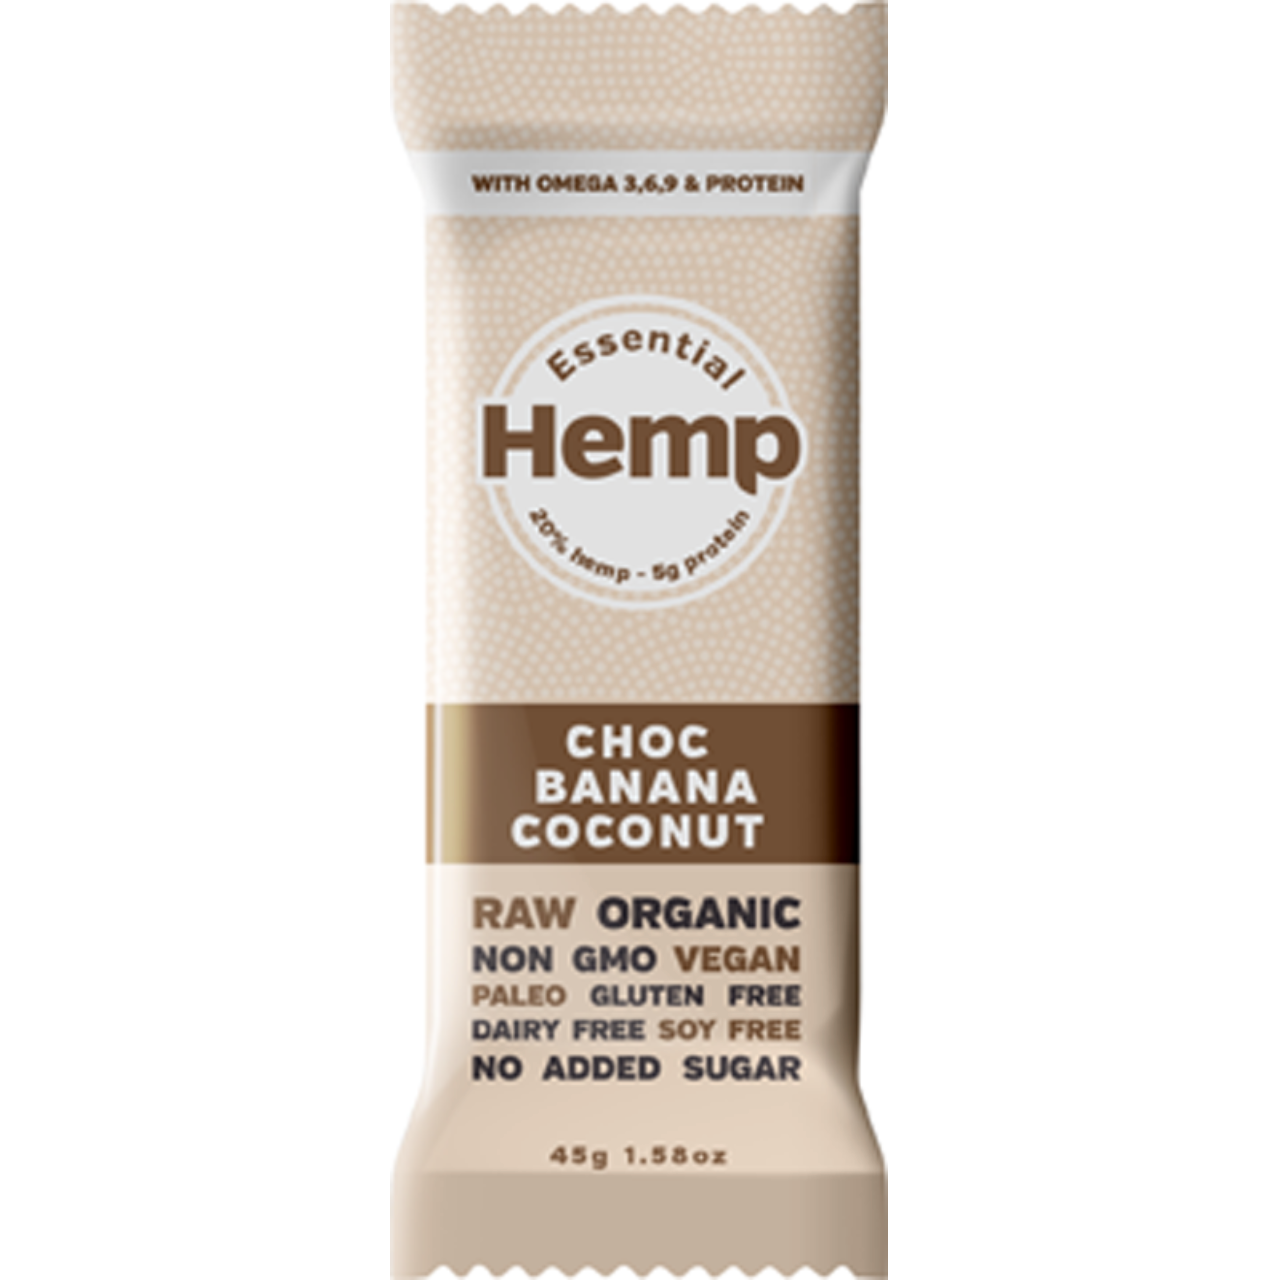 Hemp Foods Australia Hemp Snack Bar - Choc Banana